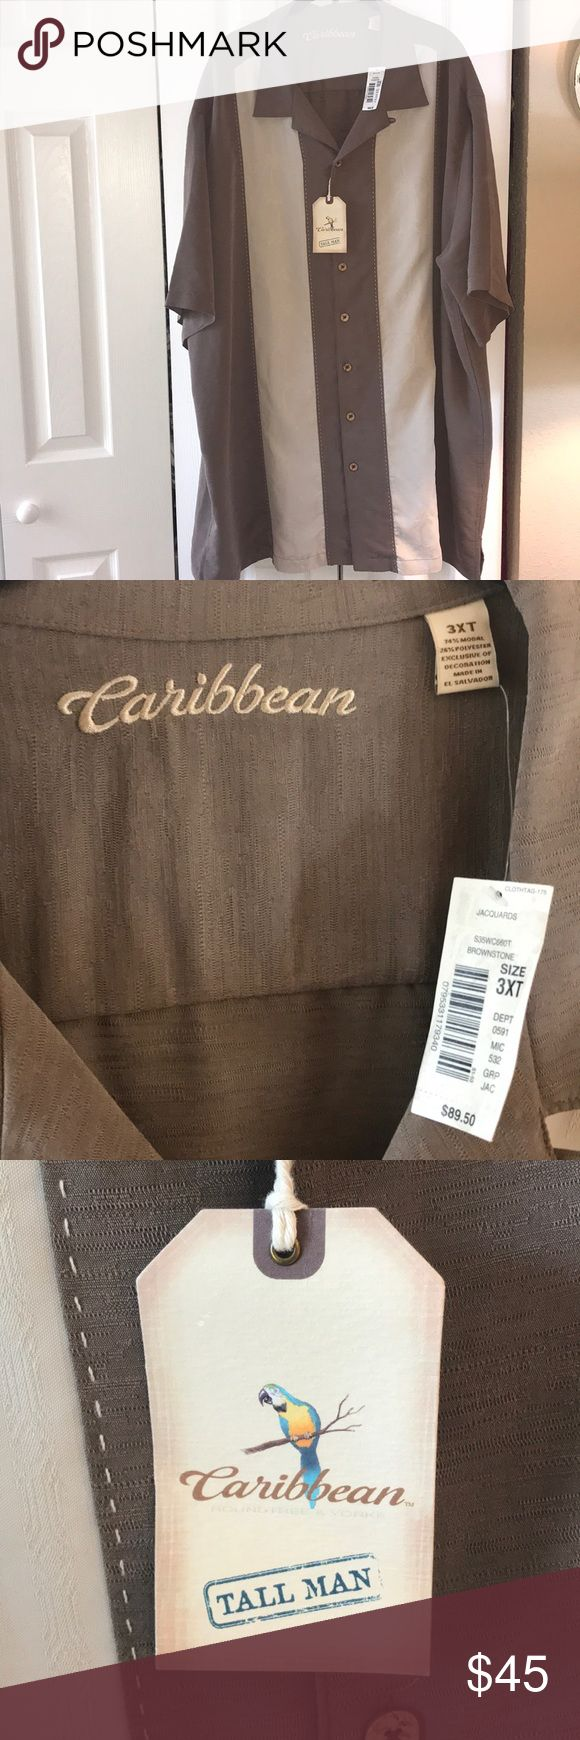 Caribbean shirt Caribbean mans buttons down shirt in taupe and cream. Accents of palm trees throughout. Buttons even have palm trees etched in them.  3XLT Very nice shirt! Caribbean Shirts Casual Button Down Shirts